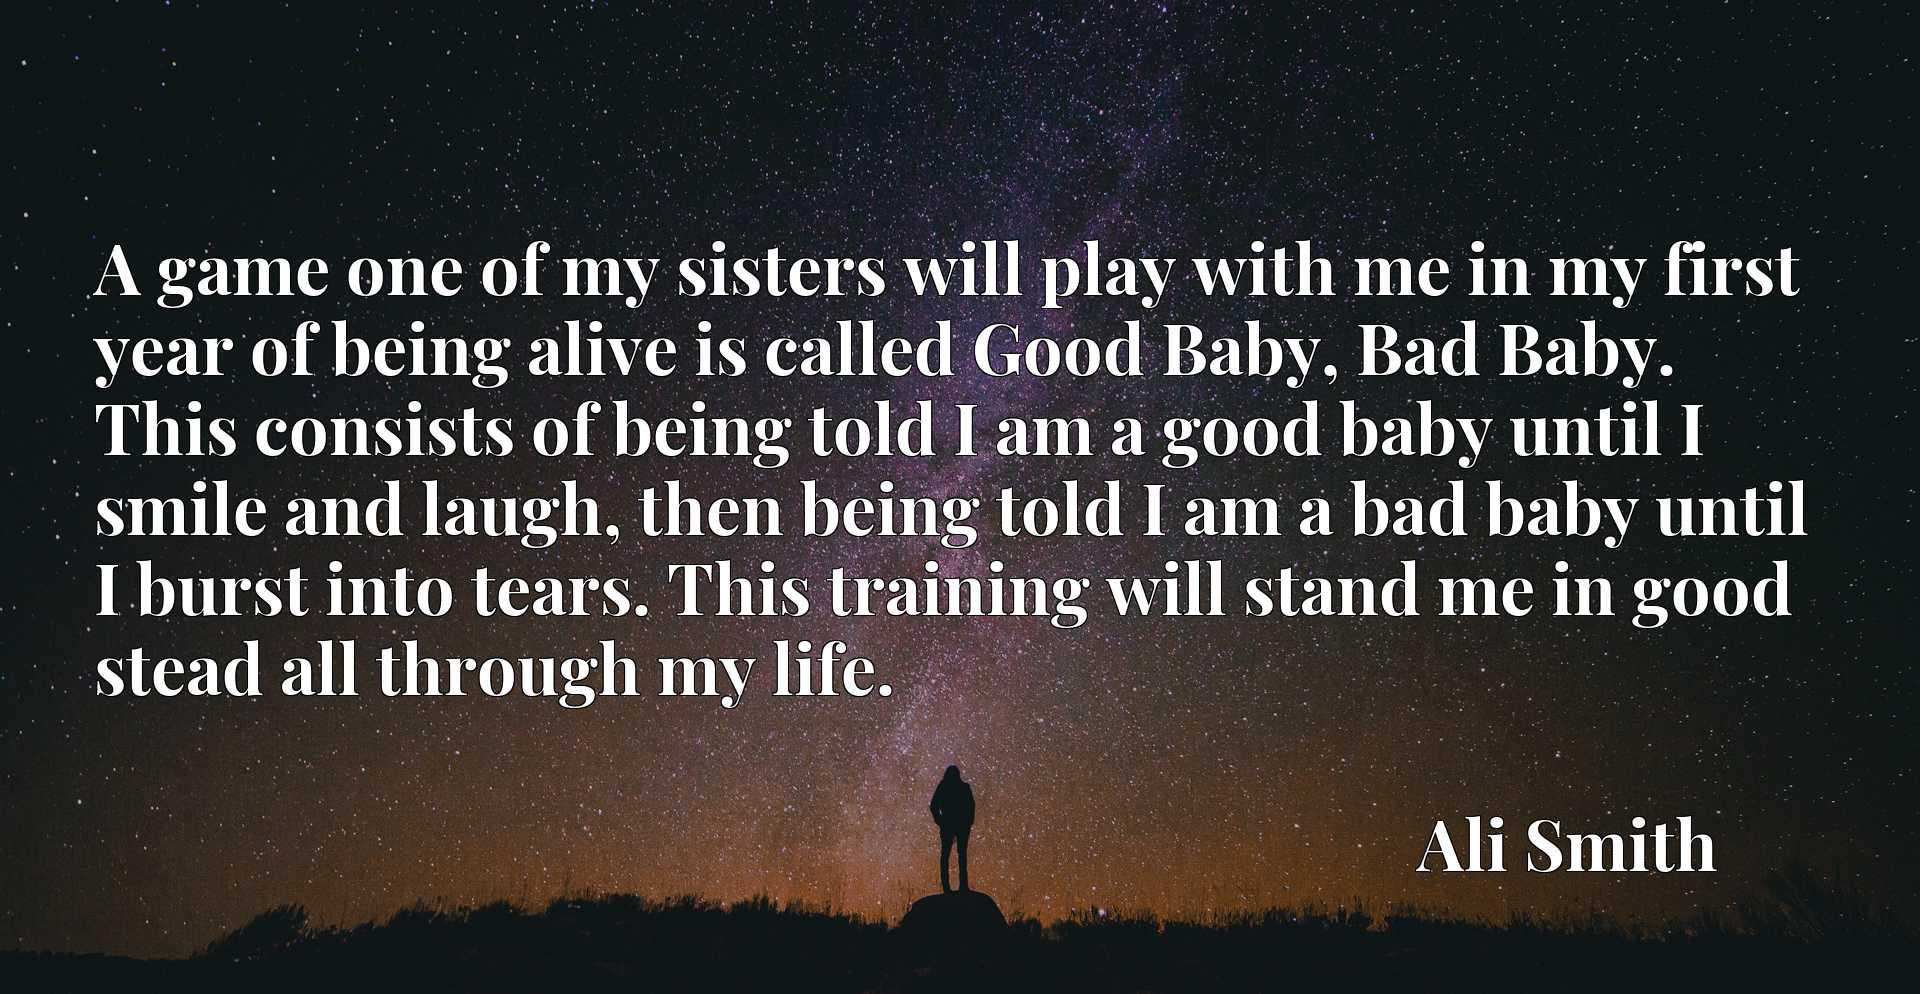 A game one of my sisters will play with me in my first year of being alive is called Good Baby, Bad Baby. This consists of being told I am a good baby until I smile and laugh, then being told I am a bad baby until I burst into tears. This training will stand me in good stead all through my life.